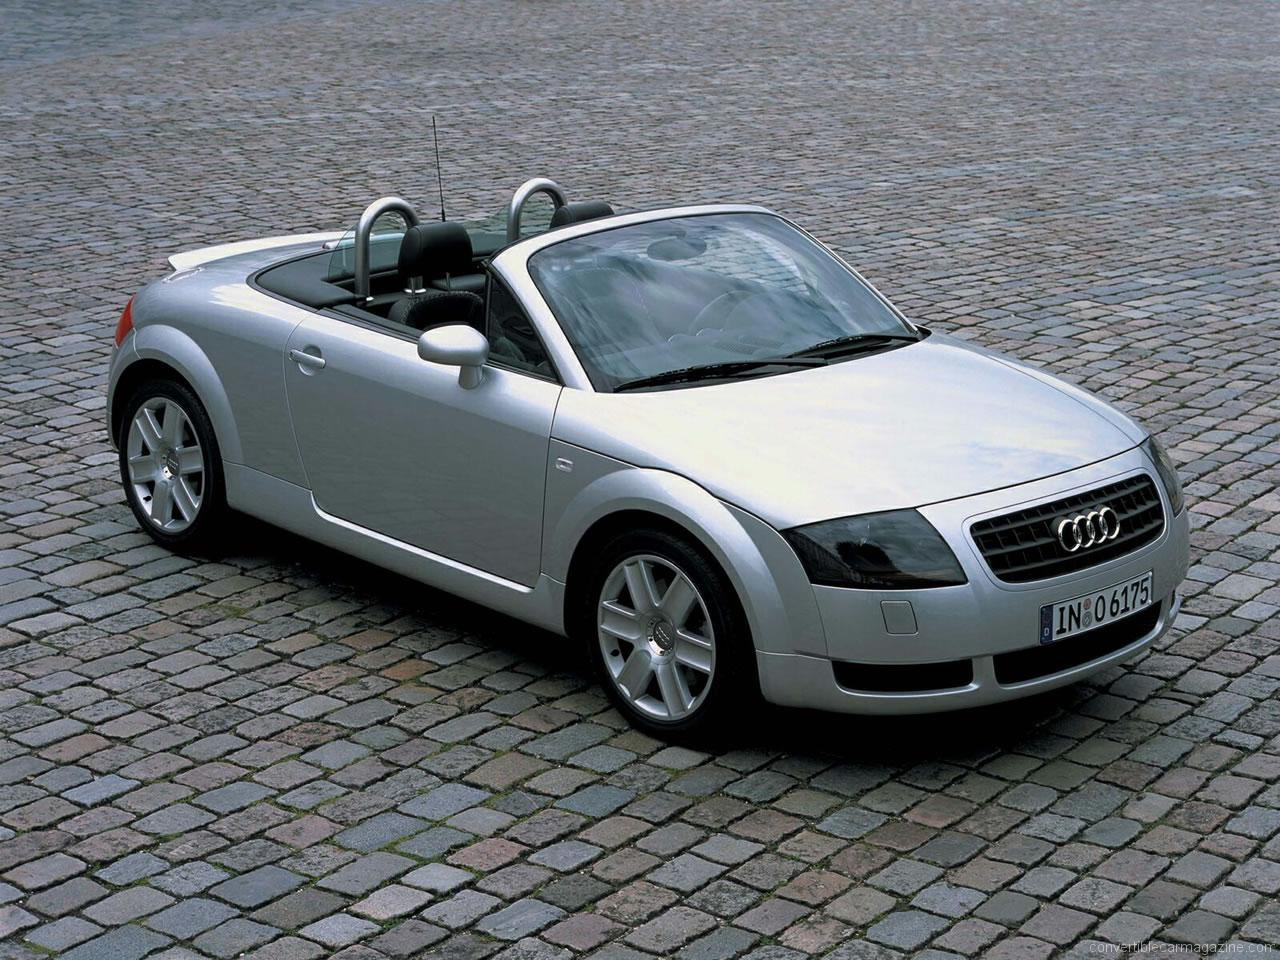 audi tt convertible hardtop wallpaper 1280x960 3419. Black Bedroom Furniture Sets. Home Design Ideas